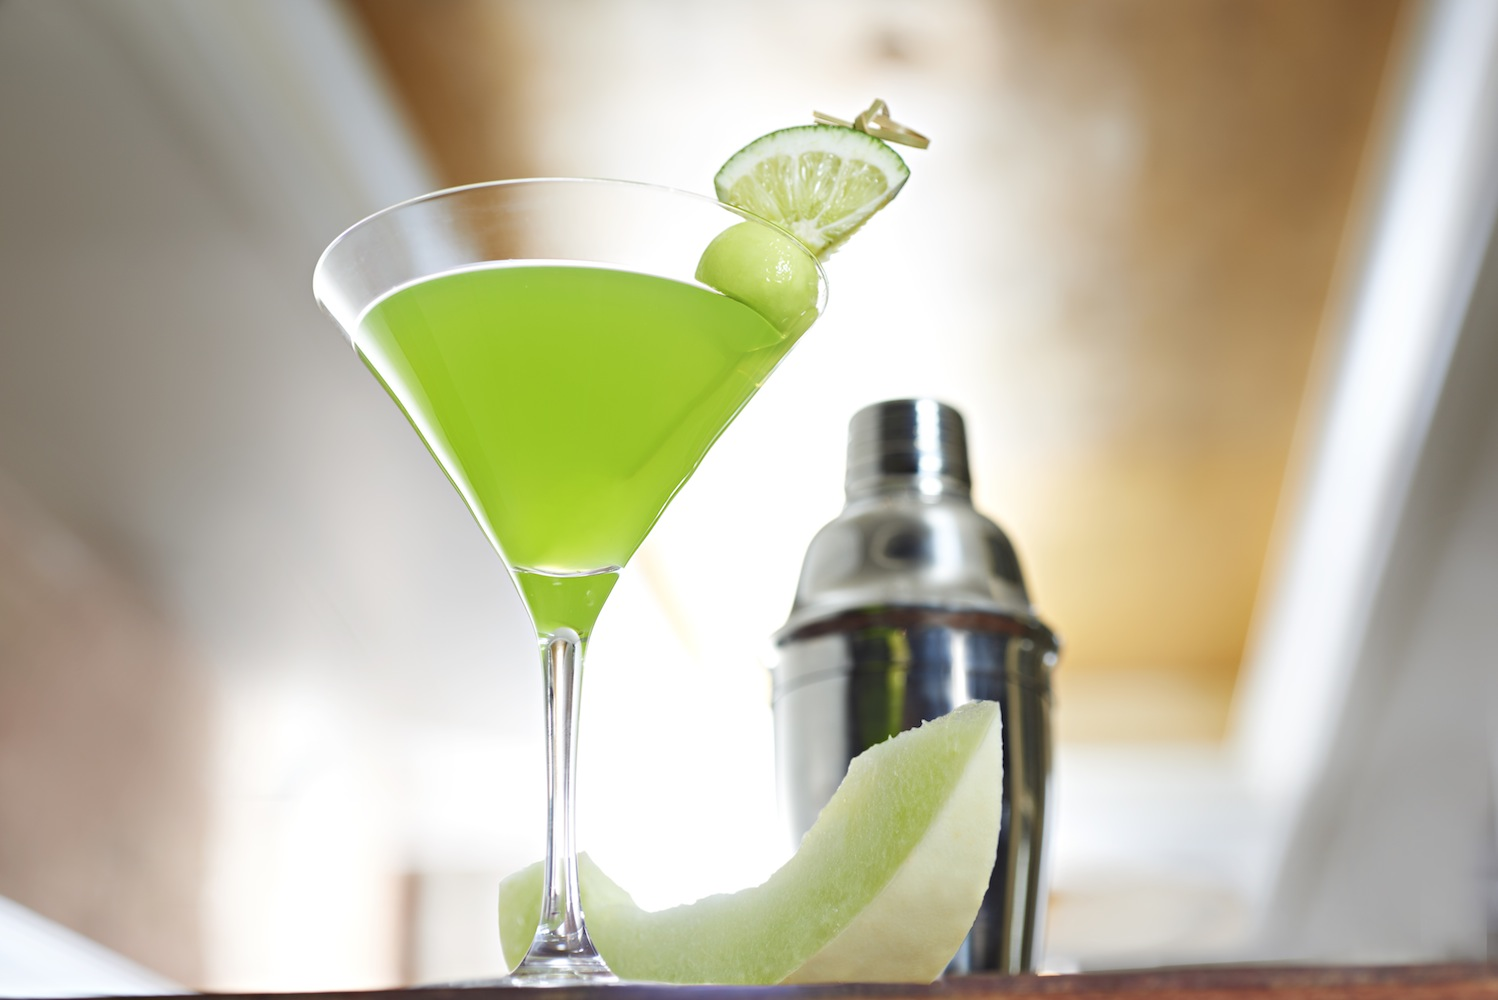 This margarita goes green for St. Patrick's Day image: sauza tequila